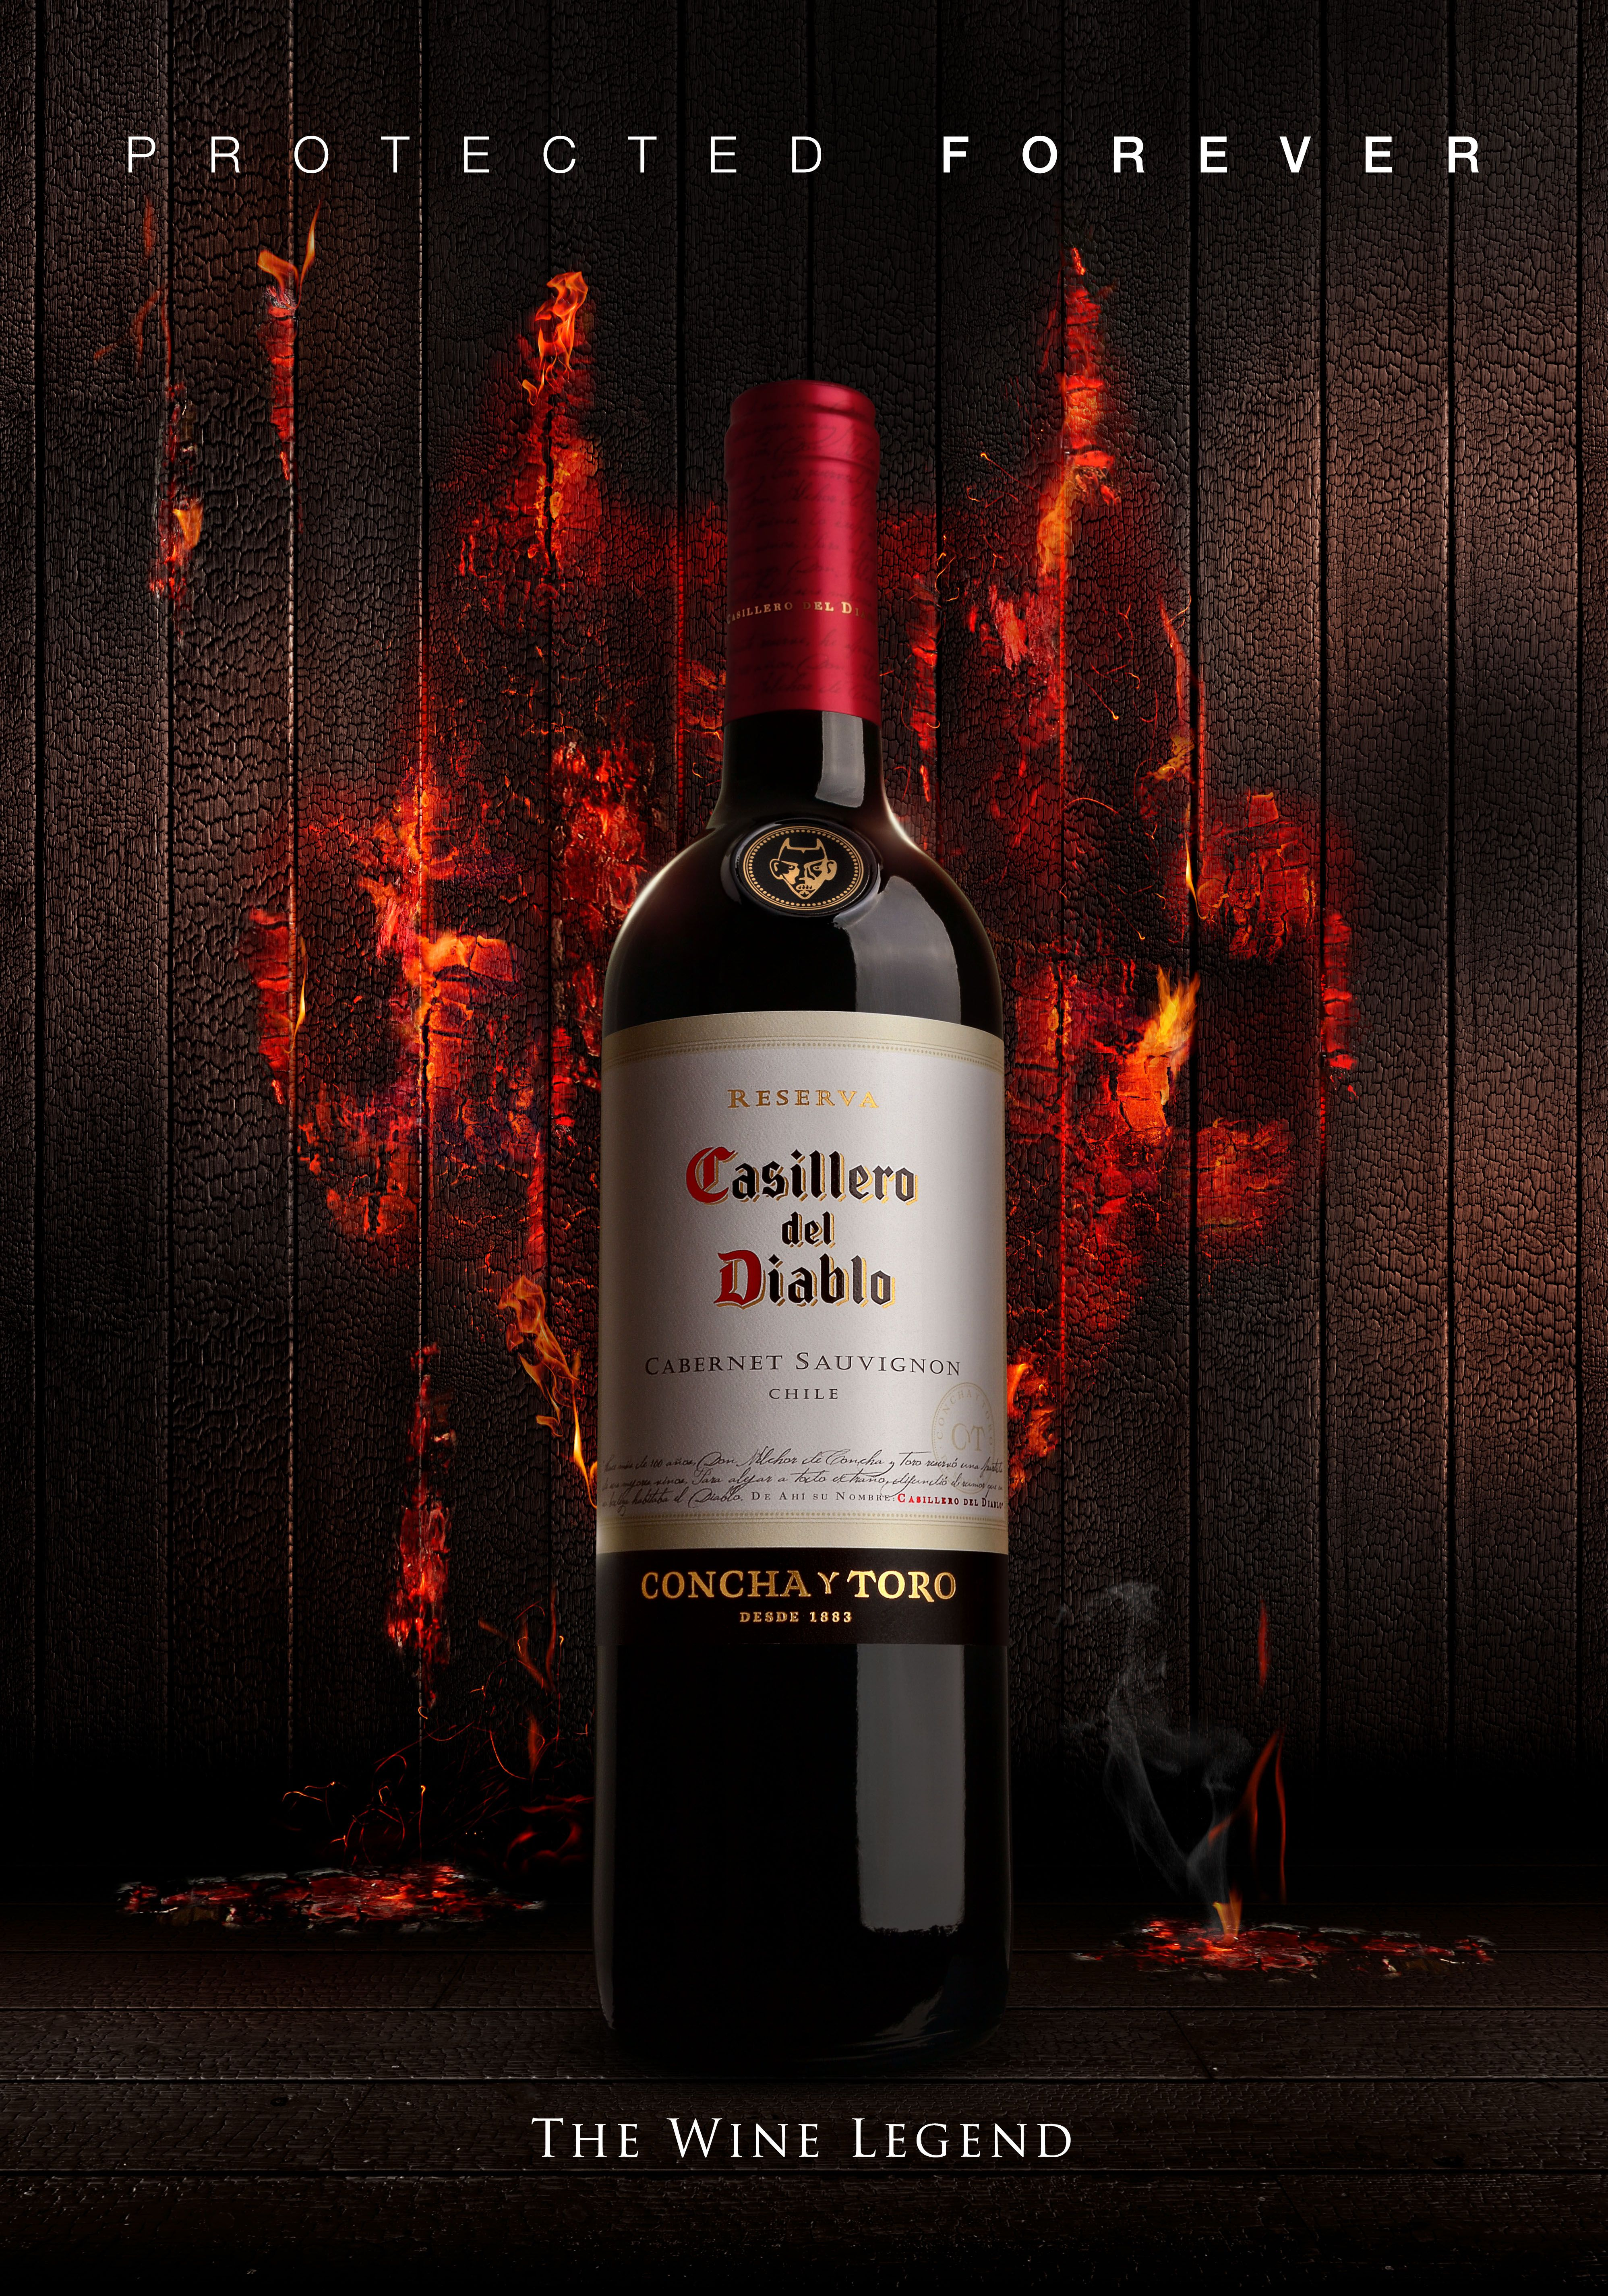 Campana Global Casillero Del Diablo 2018 Wine Wine Bottle Winemaking